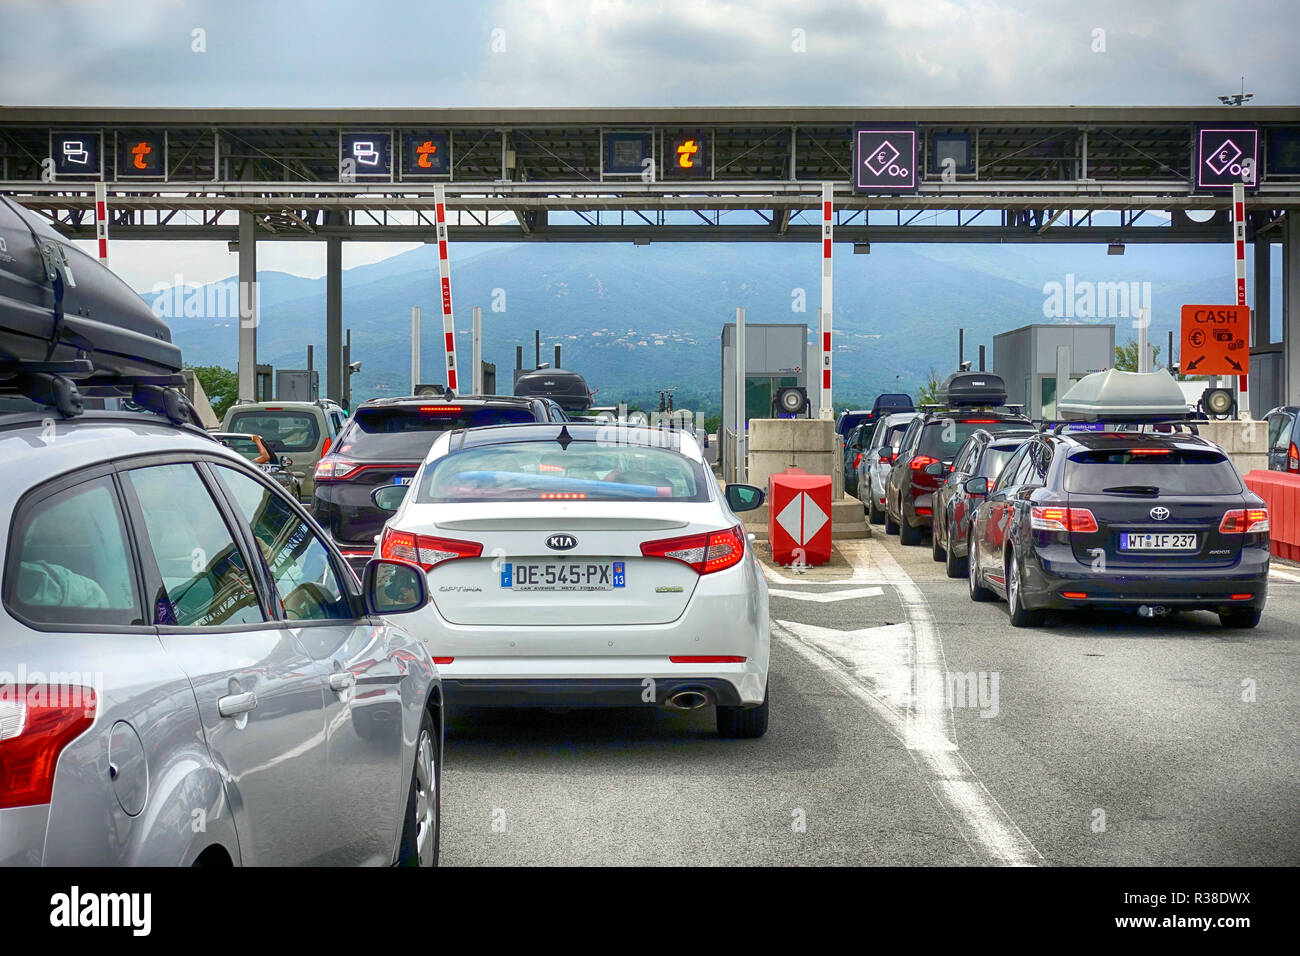 france motorway nice stock photos france motorway nice stock images alamy. Black Bedroom Furniture Sets. Home Design Ideas